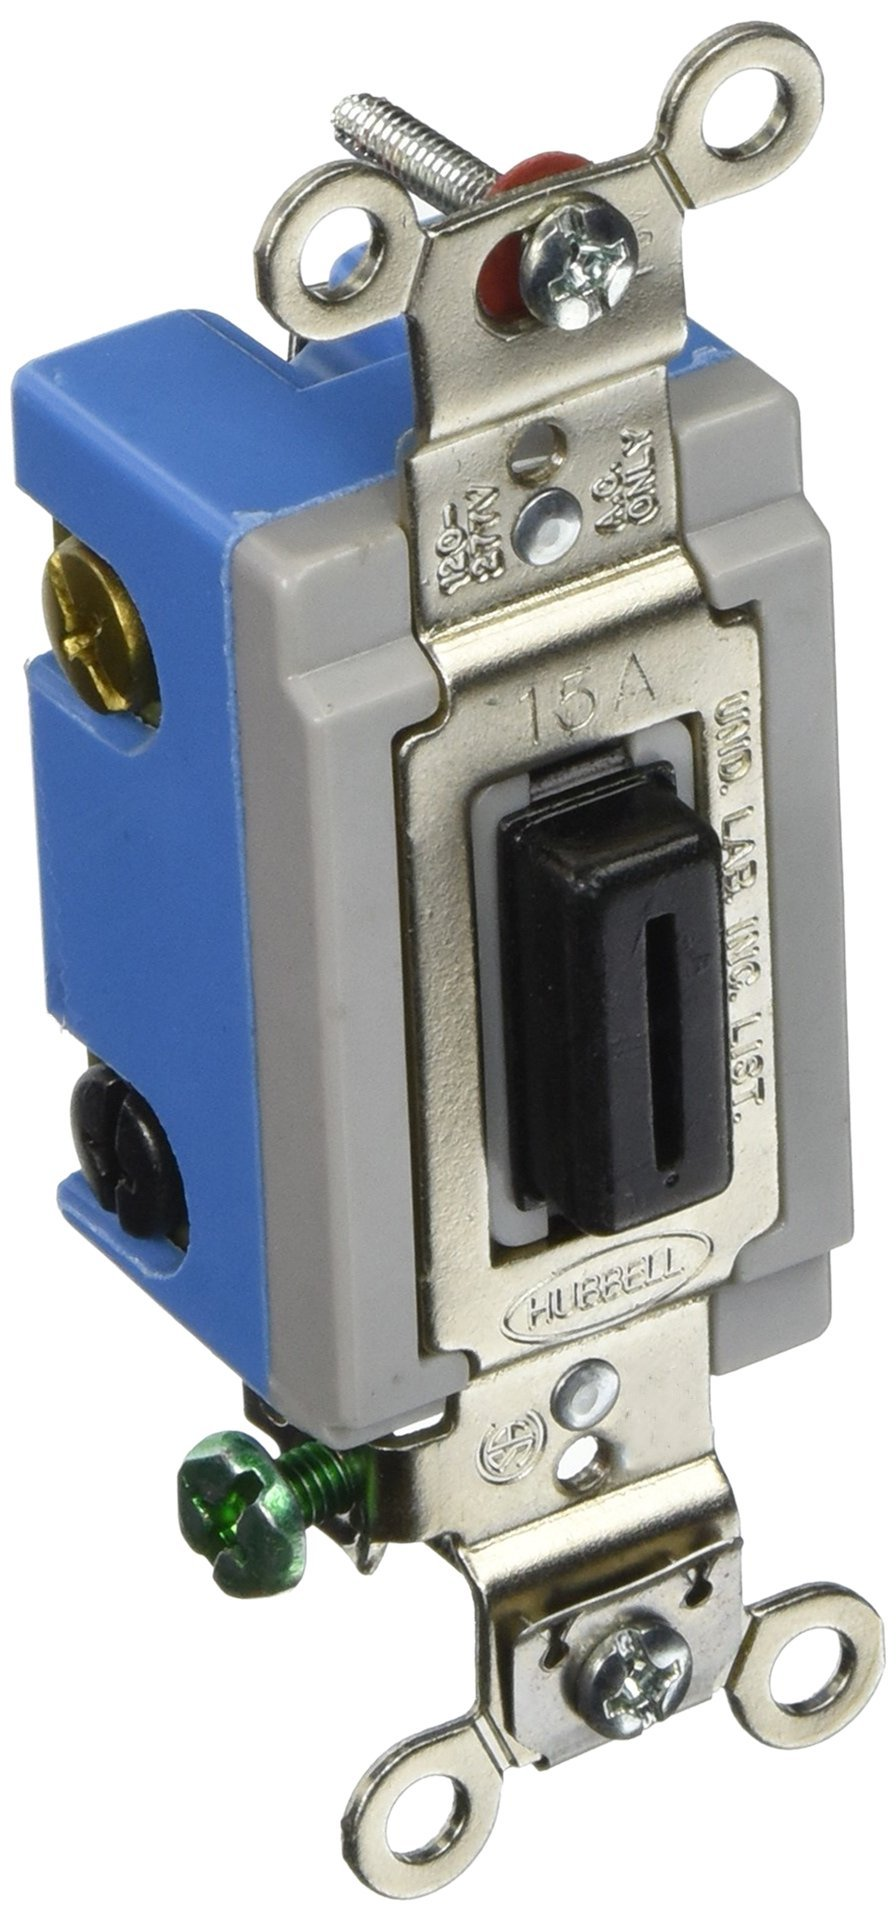 Hubbell HBL1204L 4 Way Toggle, Lock, Industrial Grade, 15 amp, 120/277V by Hubbell (Image #1)